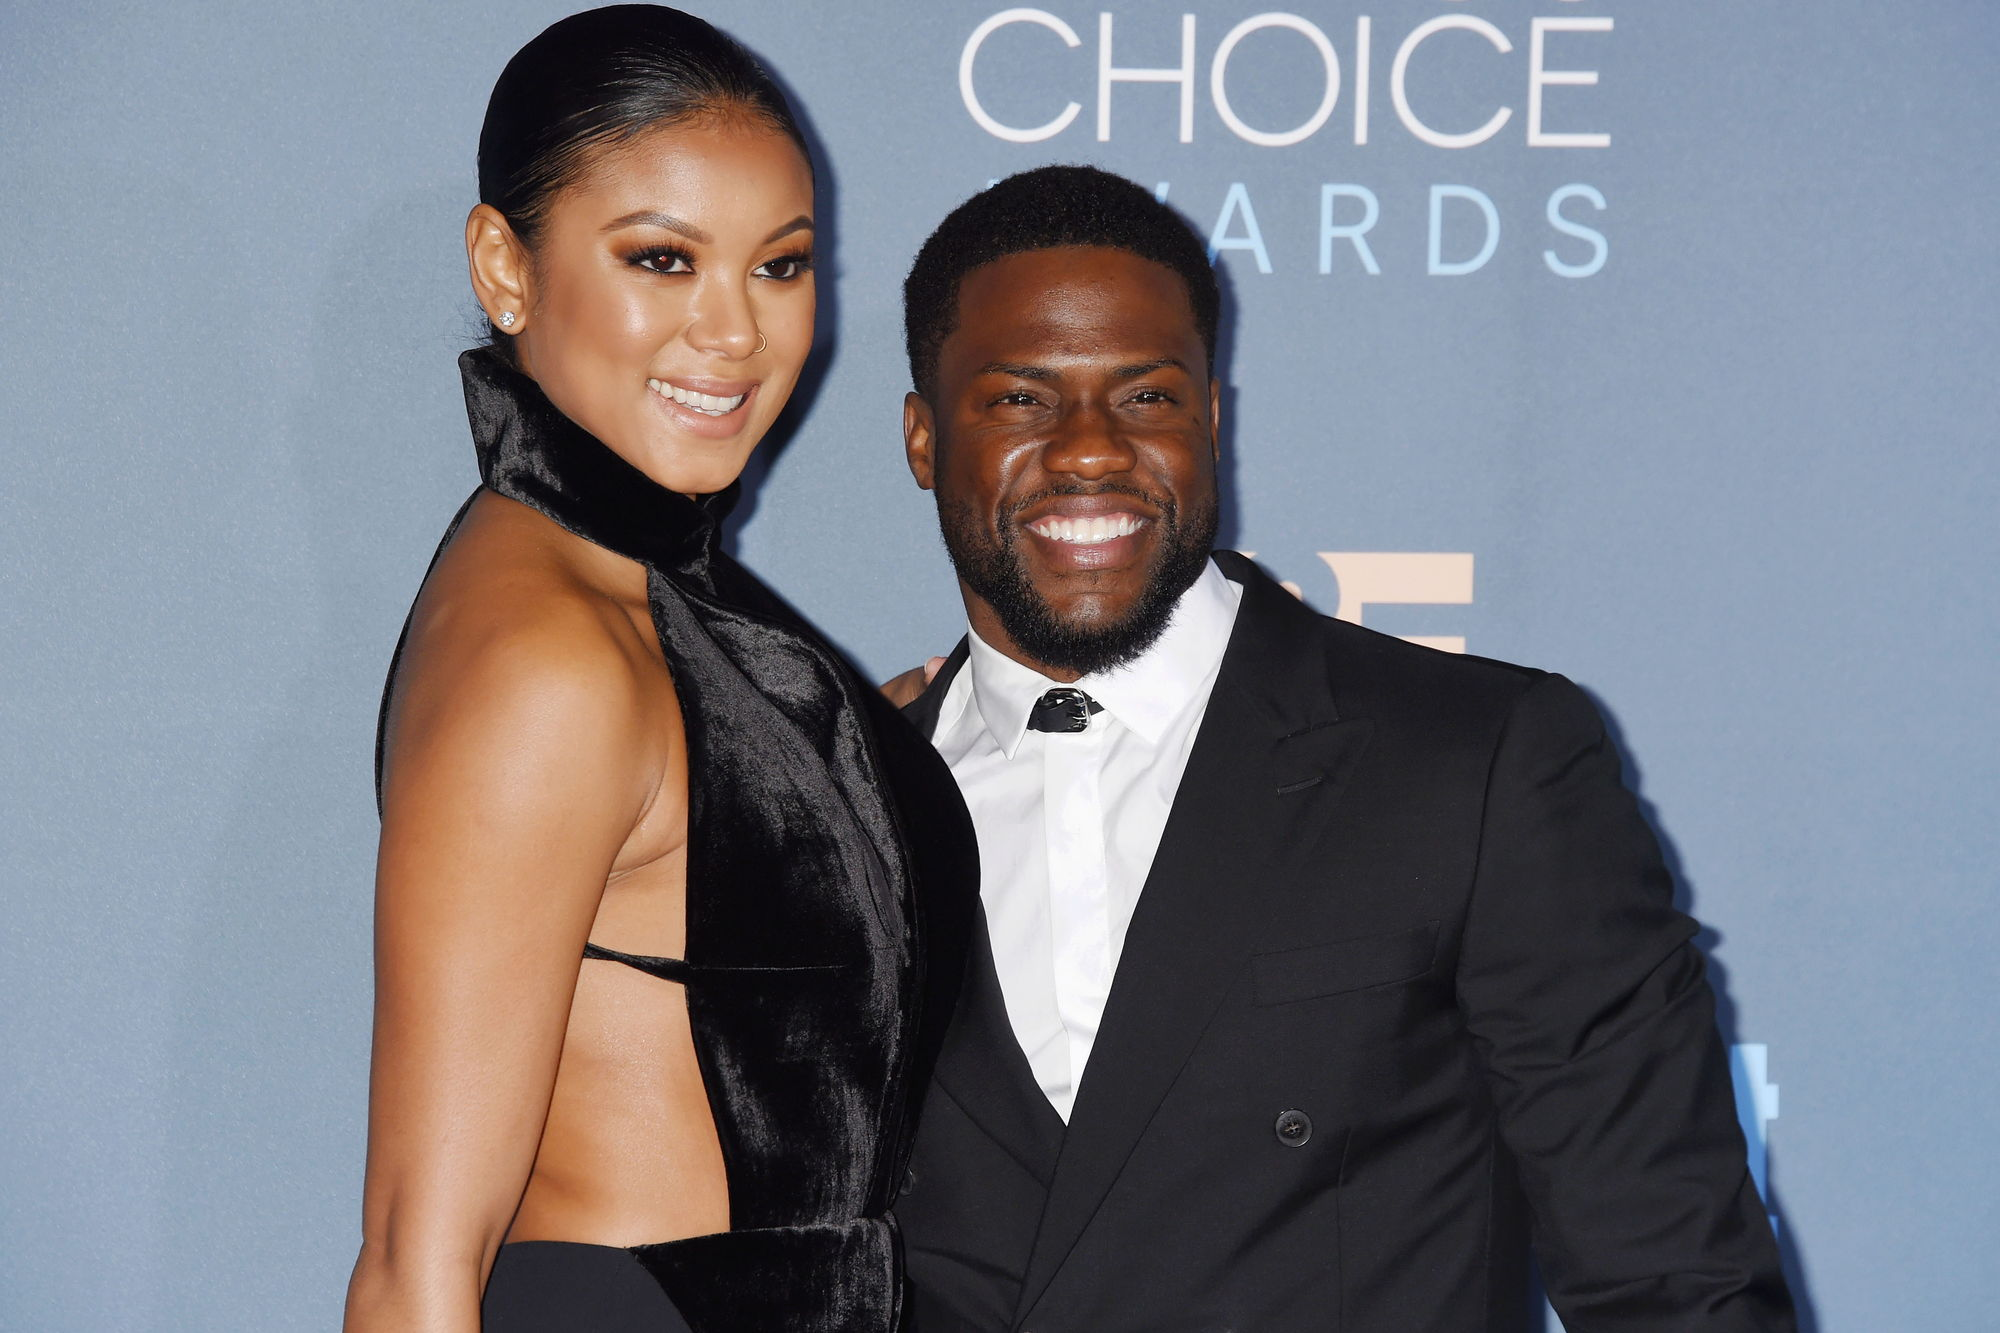 Kevin Hart and wife announce baby name with elaborate shower